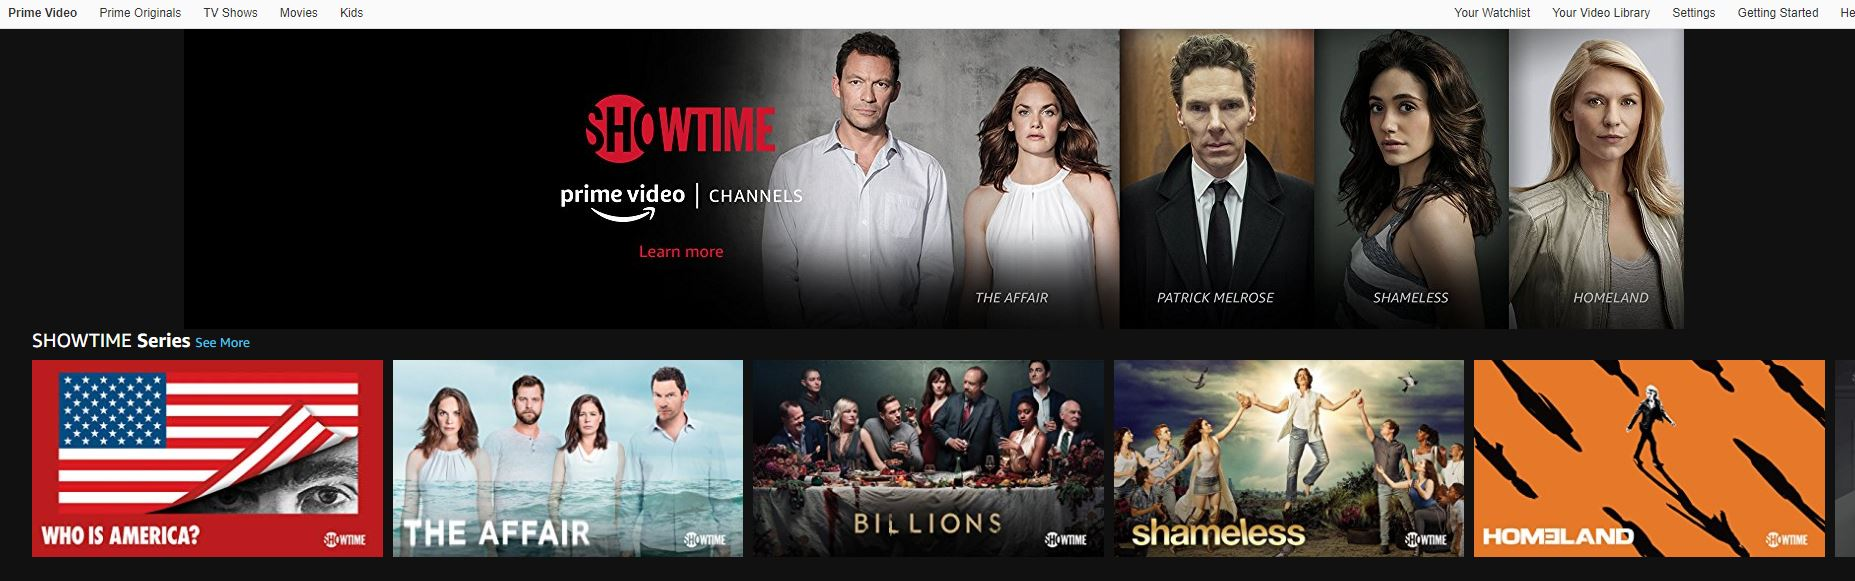 amazon-video-showtime